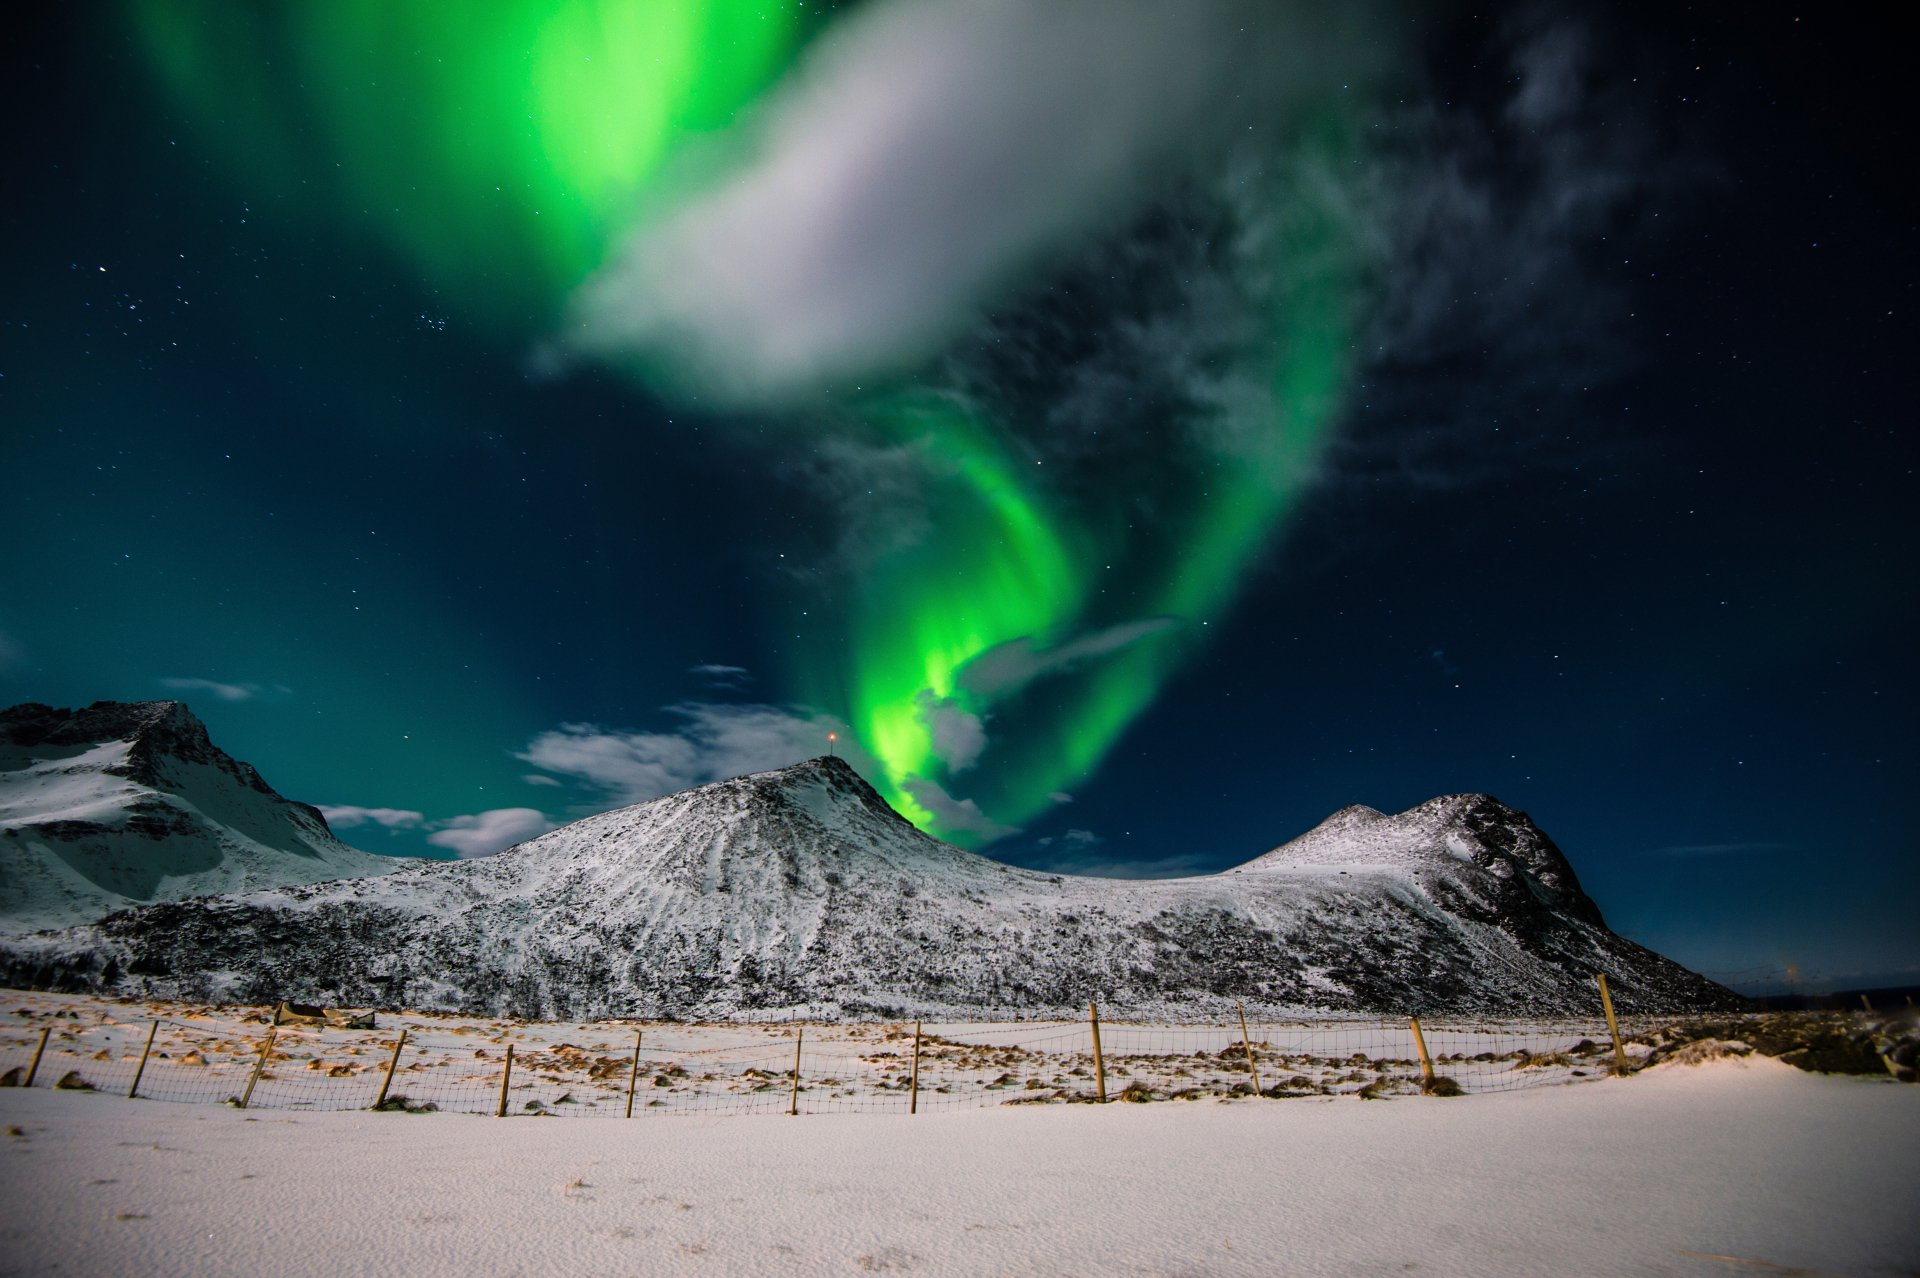 Earth - Aurora Borealis  Myrland Lofoten Islands Norway Sky Snow Earth Nature Landscape Mountain Night Wallpaper